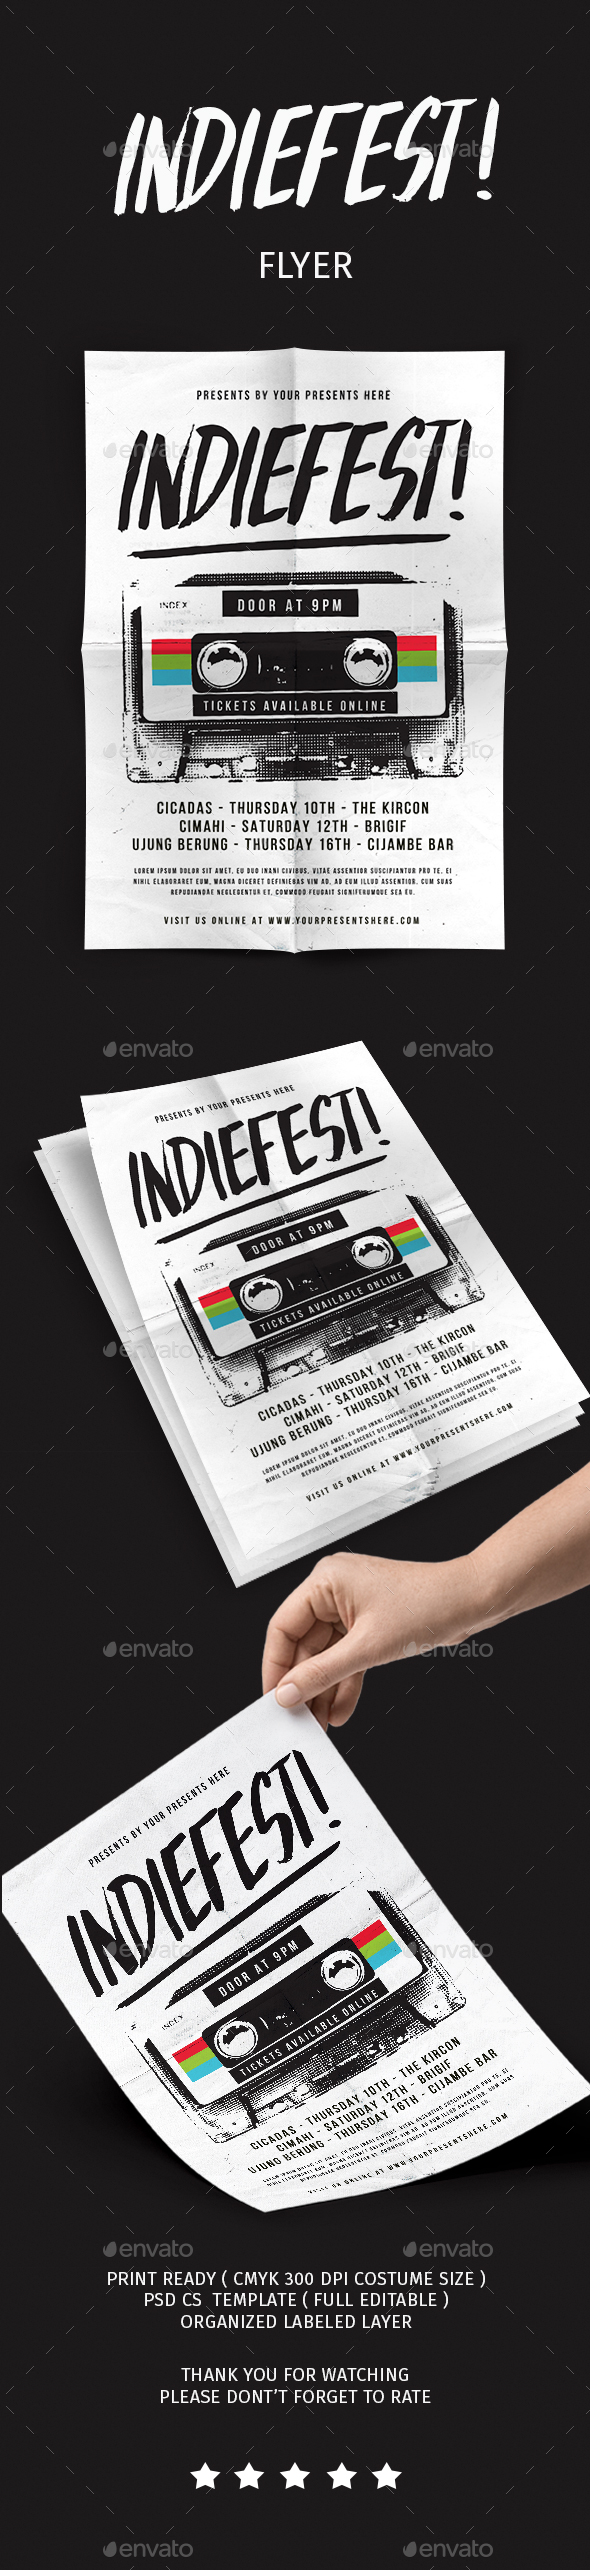 GraphicRiver Indiefest Flyer 20645657